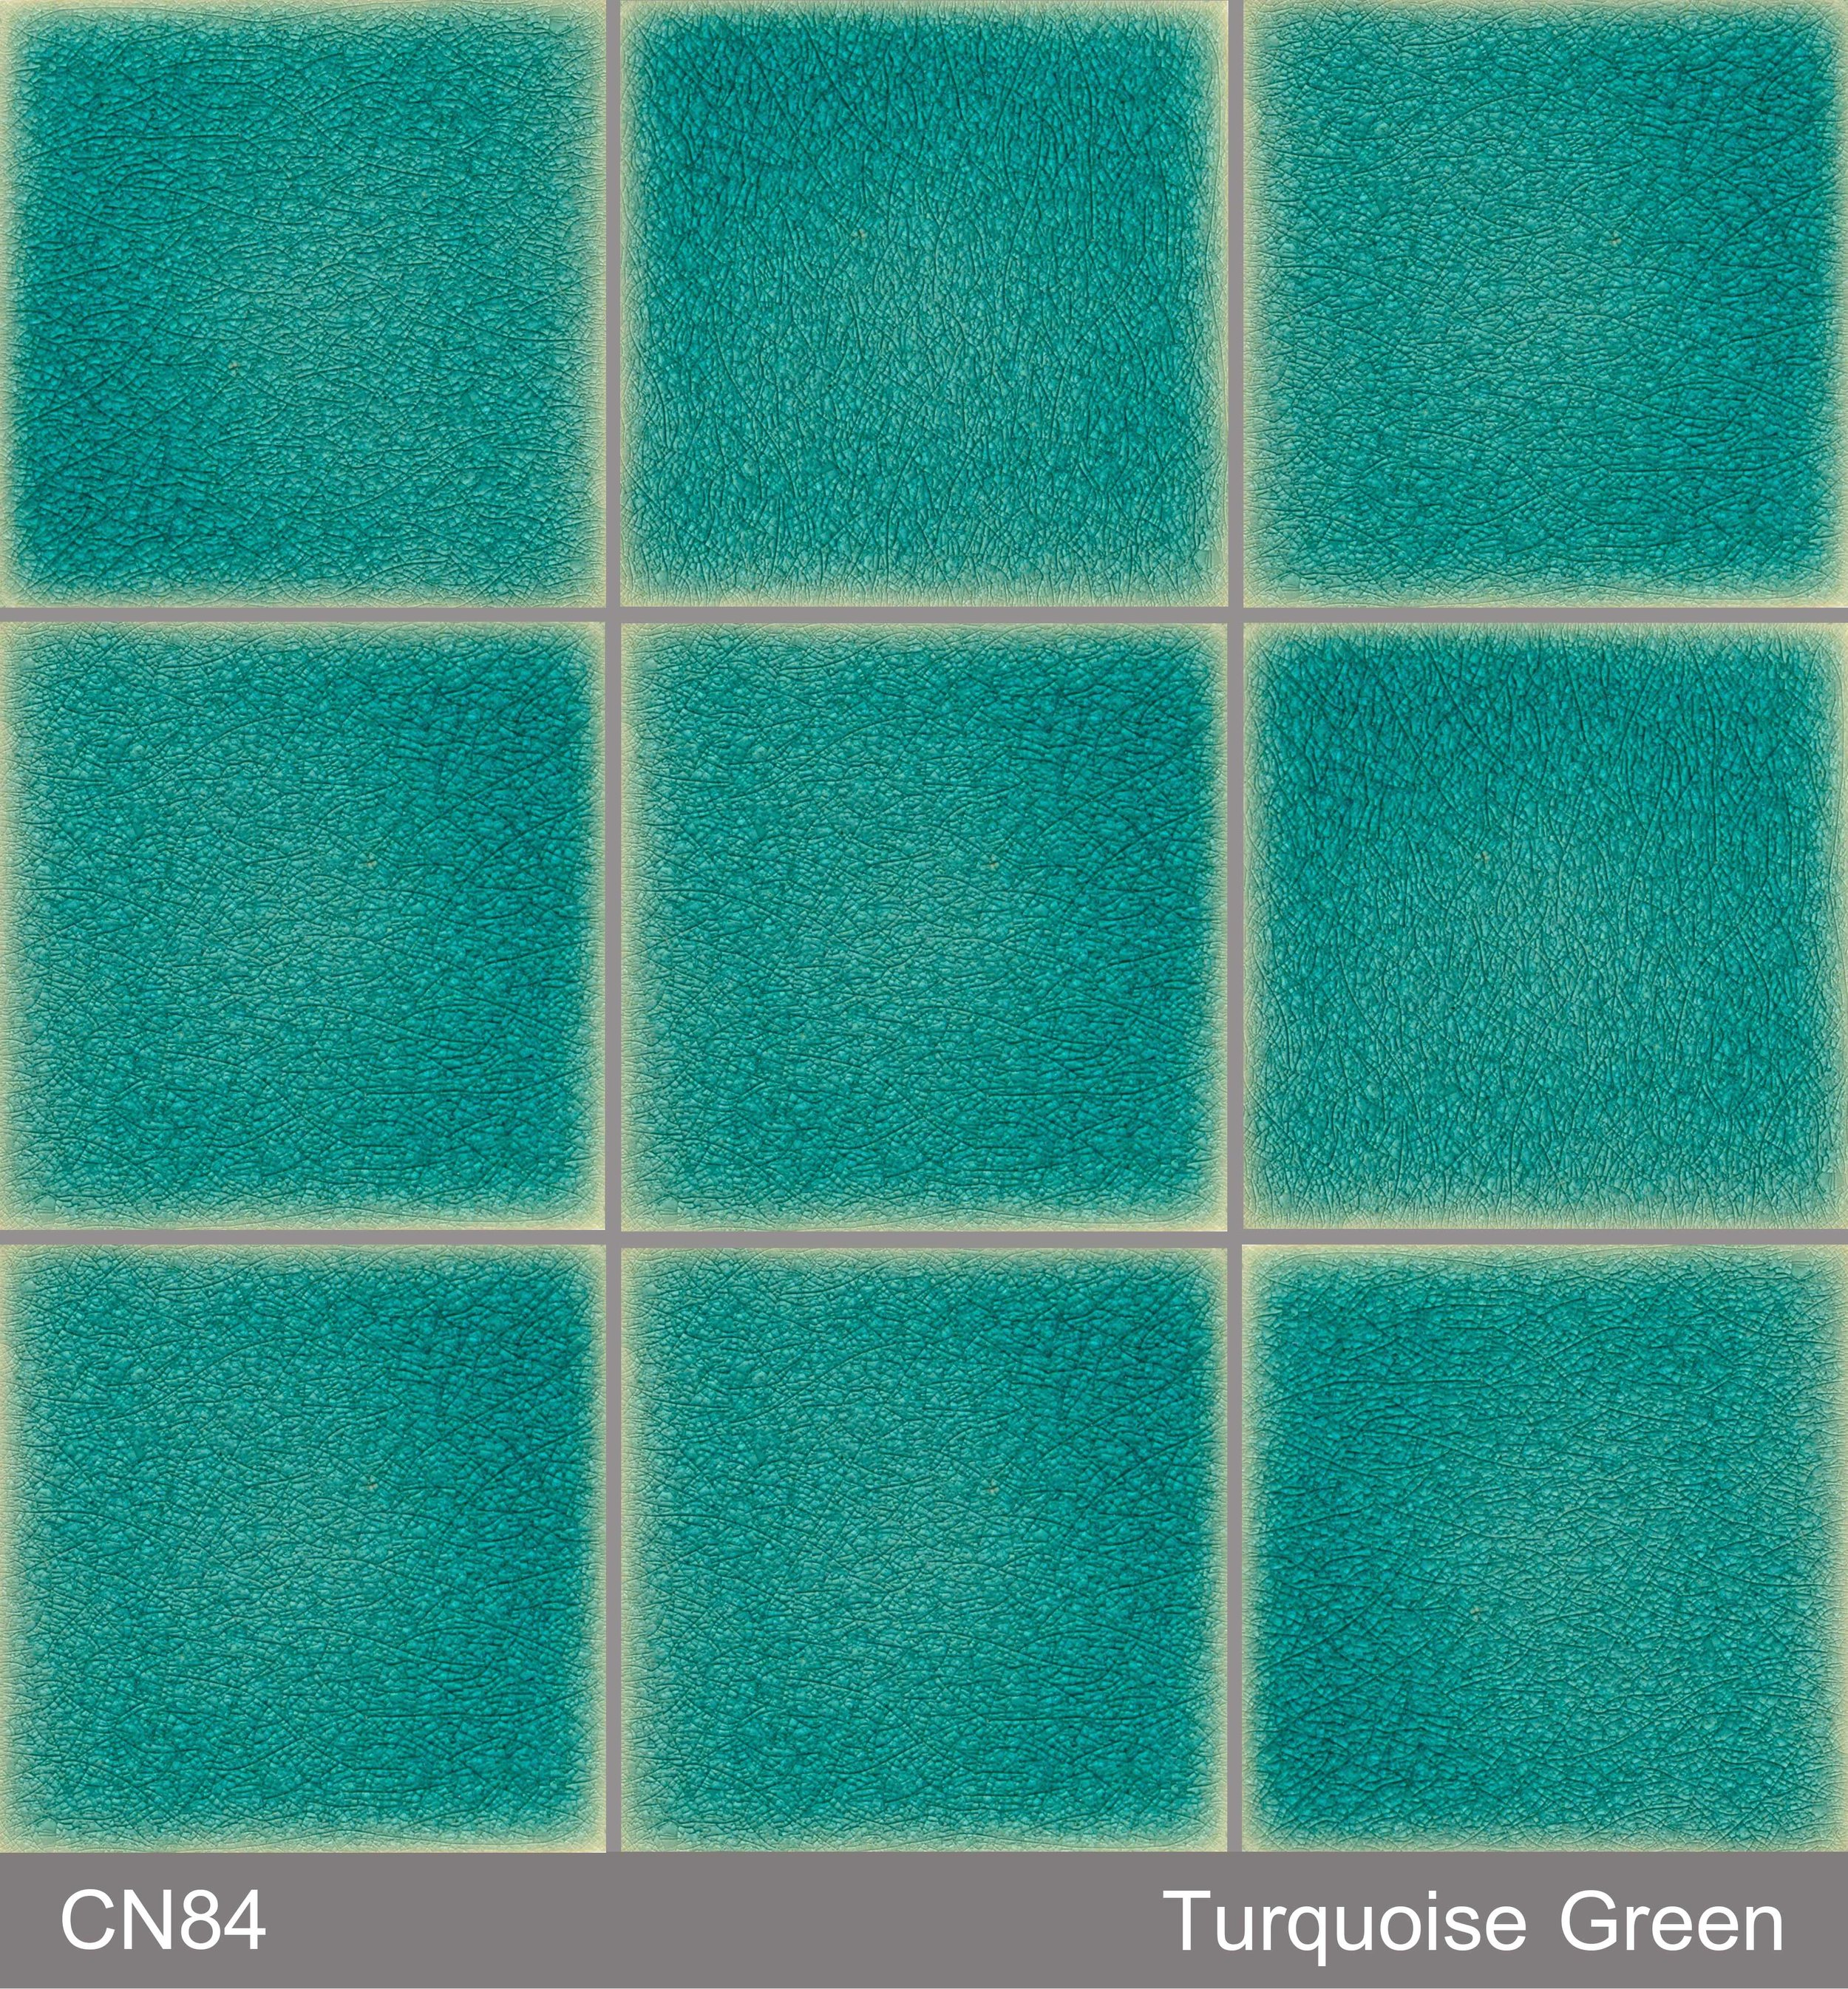 CN84 : Turquoise green